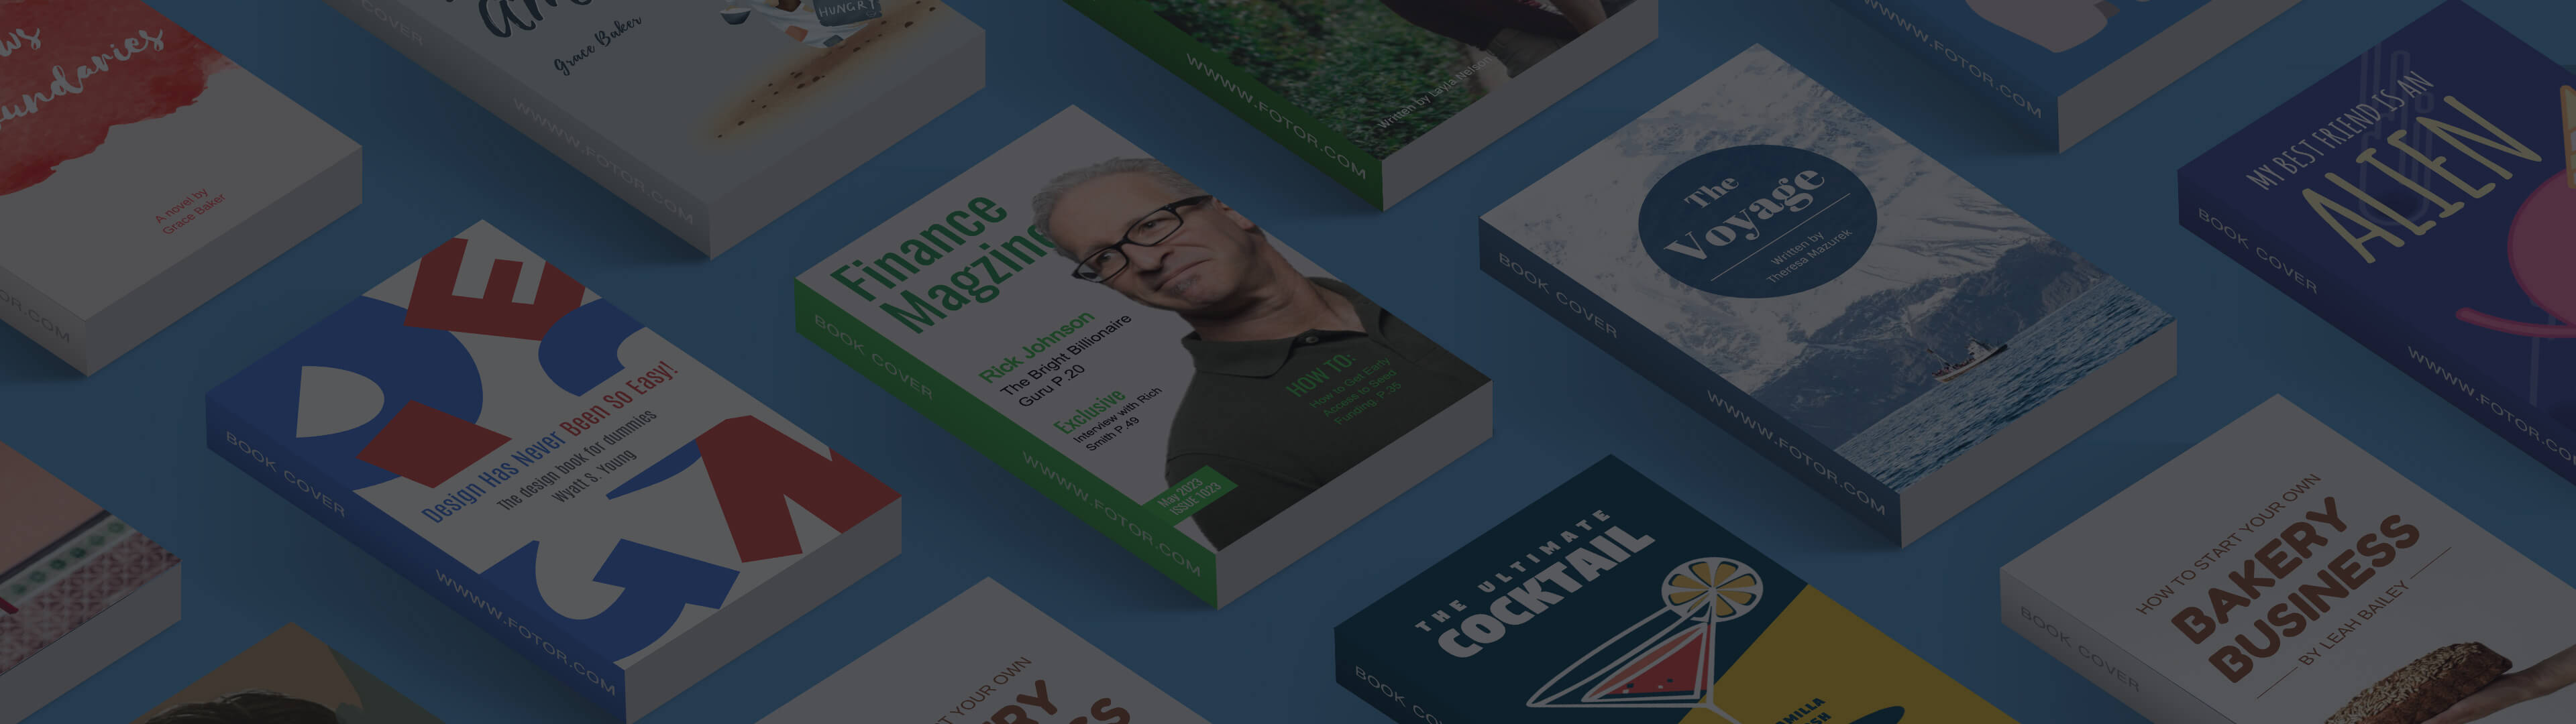 How to Make a Book Cover with Book Cover Creator   Fotor